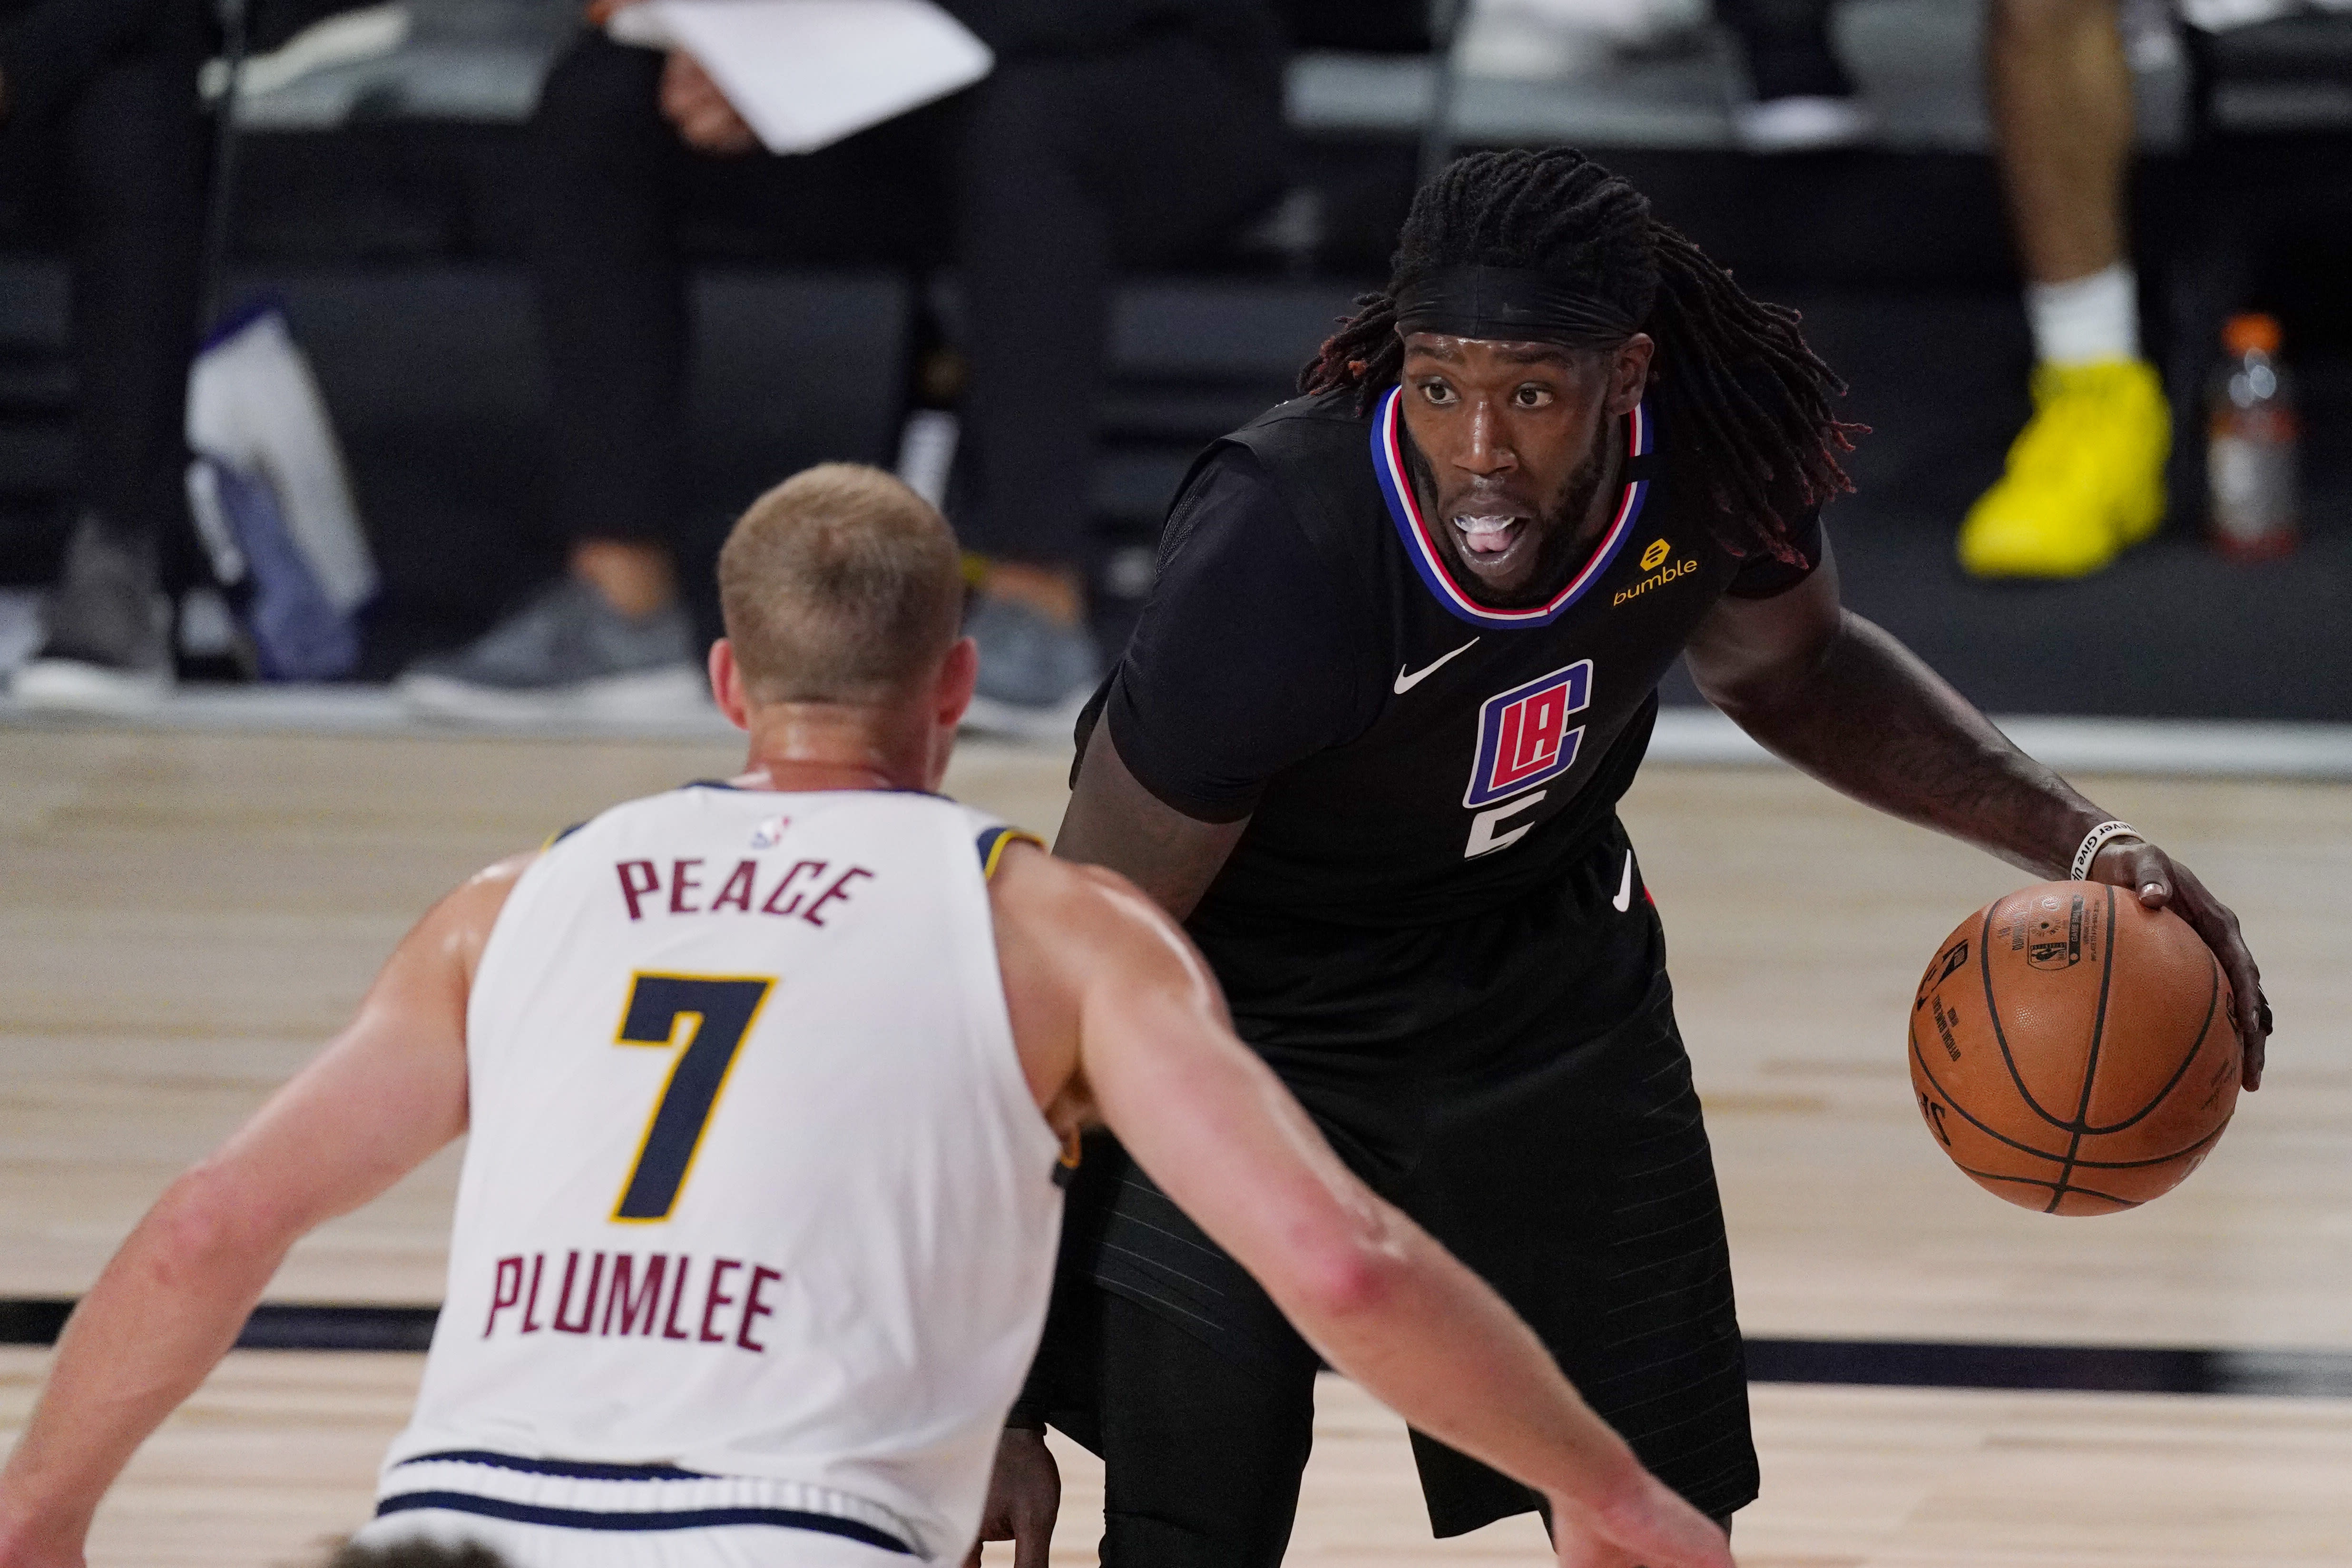 Los Angeles Clippers' Montrezl Harrell (5) is defended by Denver Nuggets' Mason Plumlee (7) in the second half of an NBA conference semifinal playoff basketball game Thursday, Sept 3, 2020, in Lake Buena Vista Fla. (AP Photo/Mark J. Terrill)